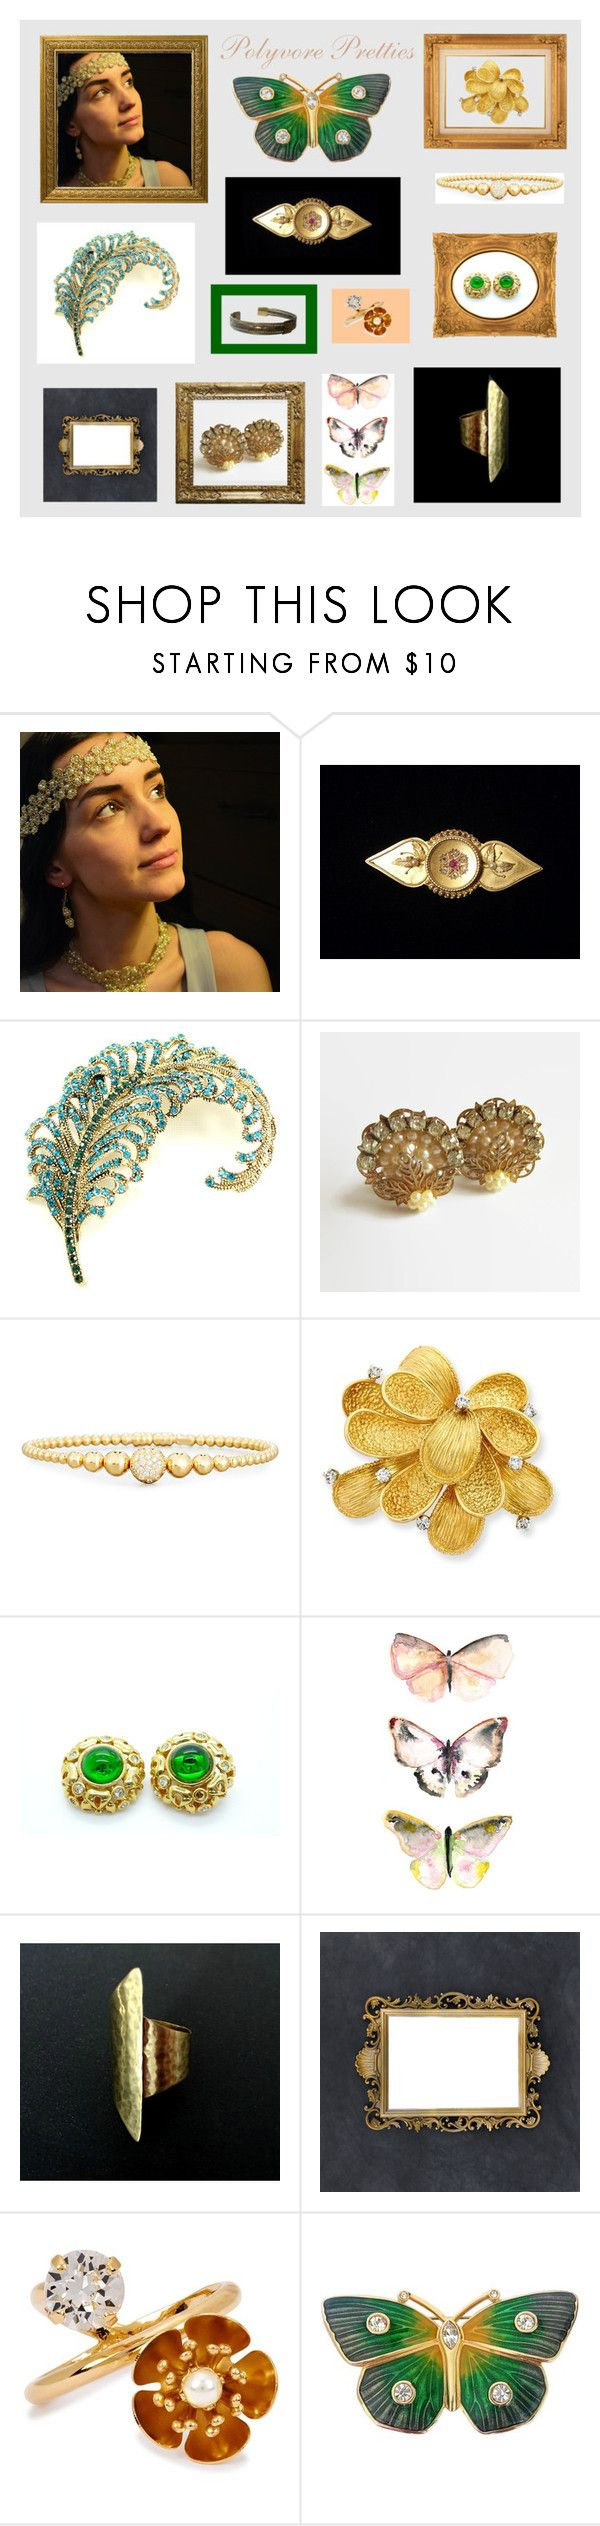 """""""Polyvore Pretties"""" by anna-ragland ❤ liked on Polyvore featuring Rivière, Nina Ricci, CA&LOU, contemporary and vintage"""